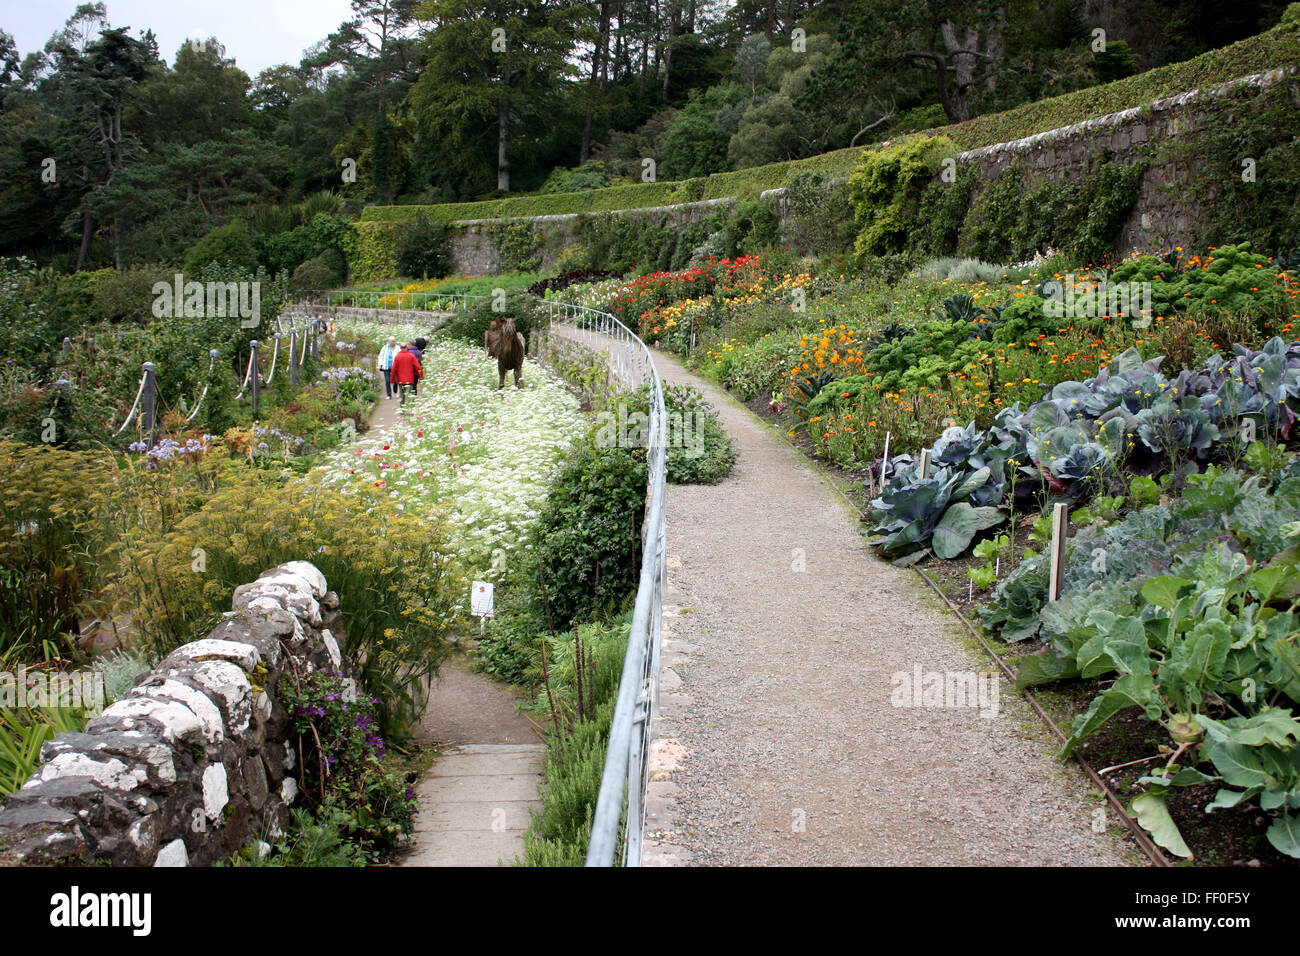 The Walled Garden At Inverewe Gardens, Wester Ross, Scotland